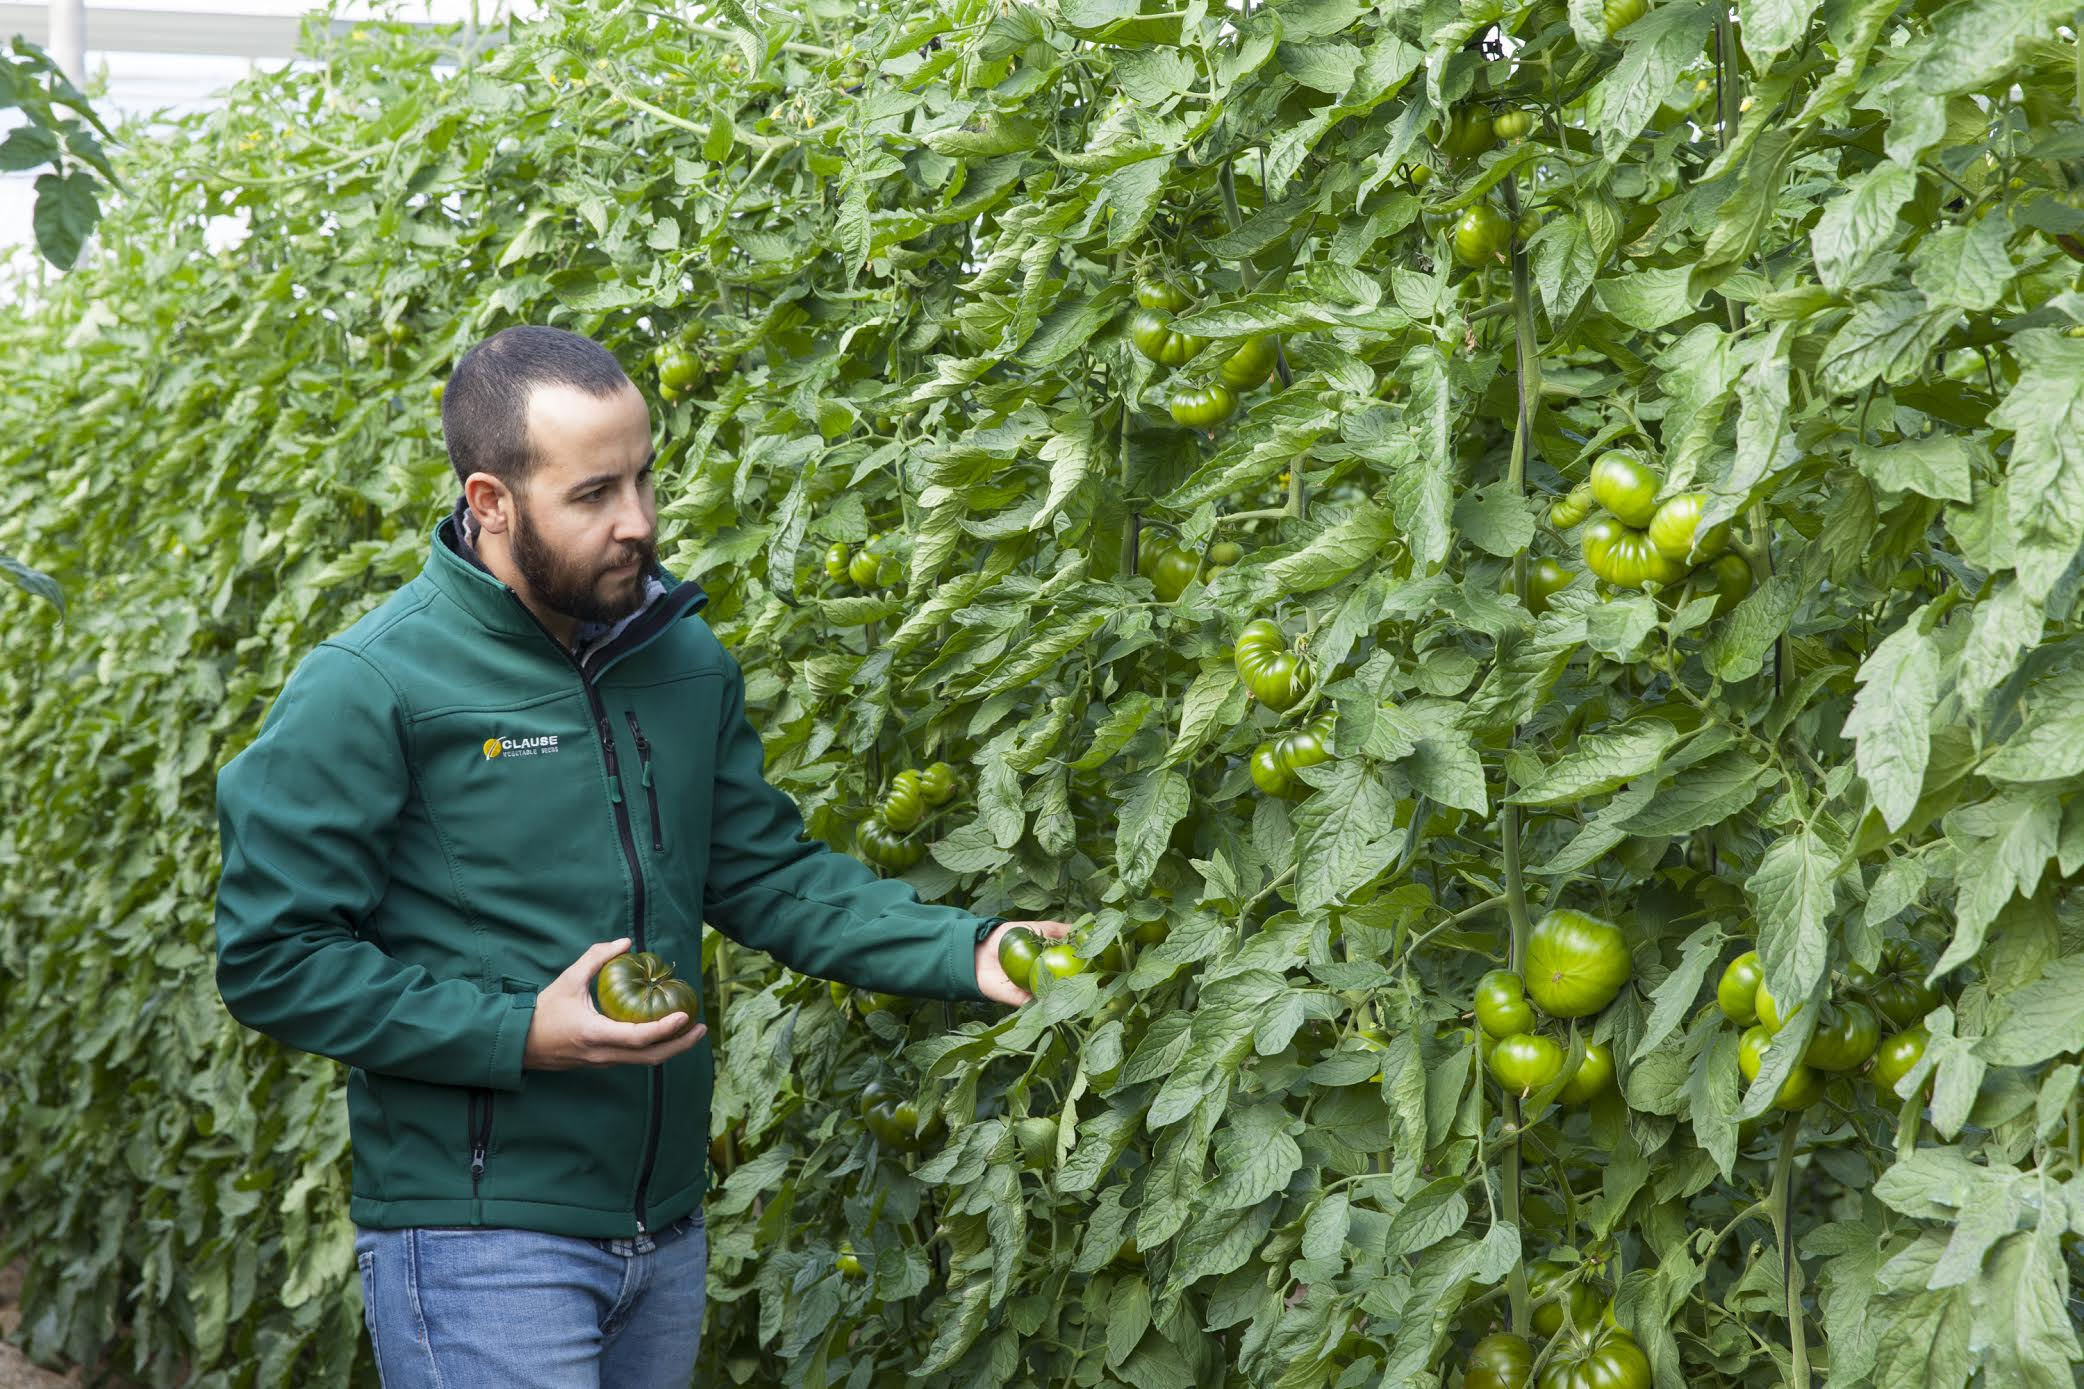 HM Clause launches this season of the cherry tomato varieties Saborini and Astuto, as well as a 'unique' variety of Marmande tomato